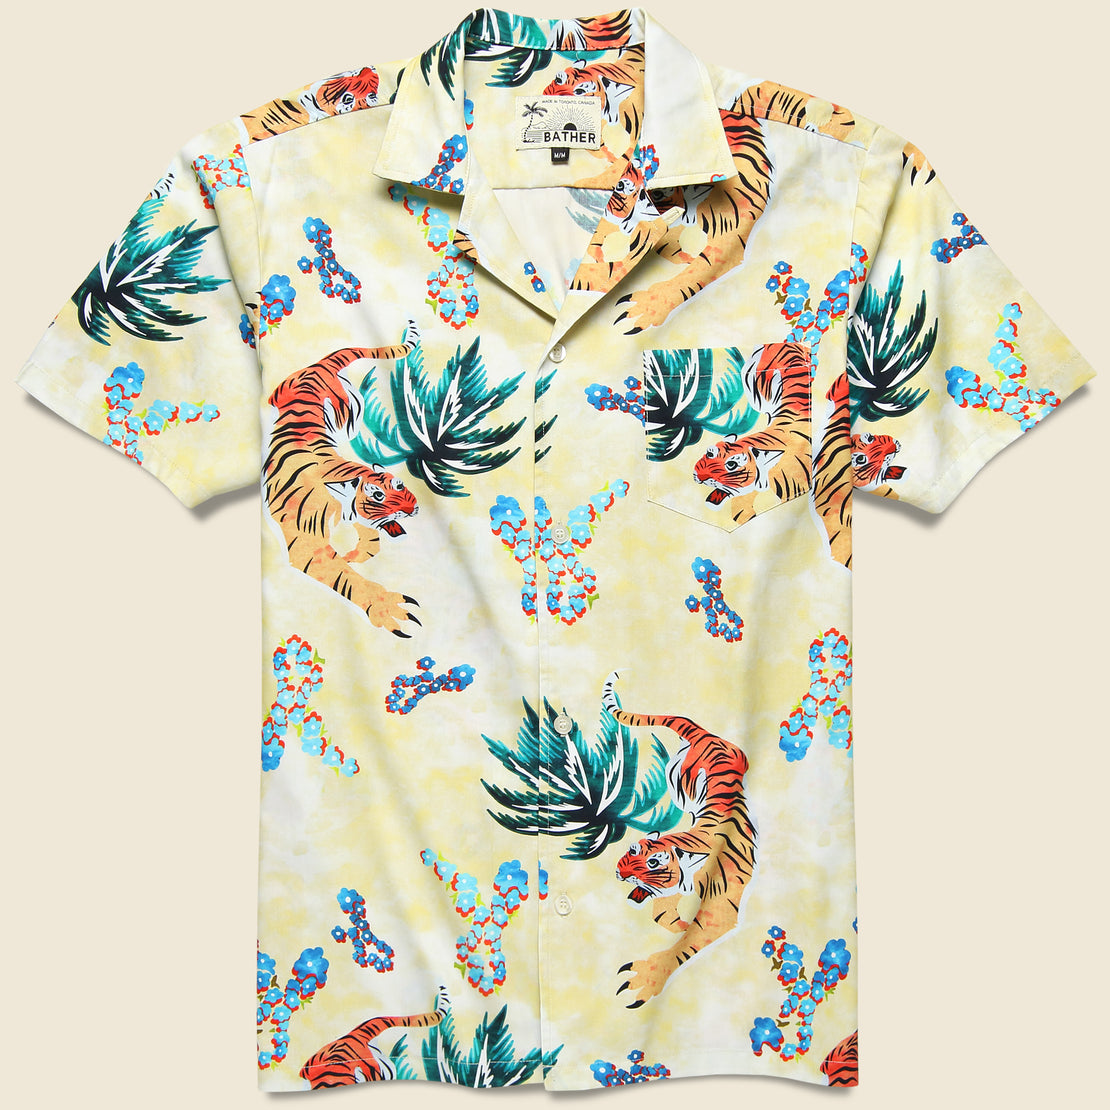 Bather Hawaiian Tiger Button Up Shirt - Beige